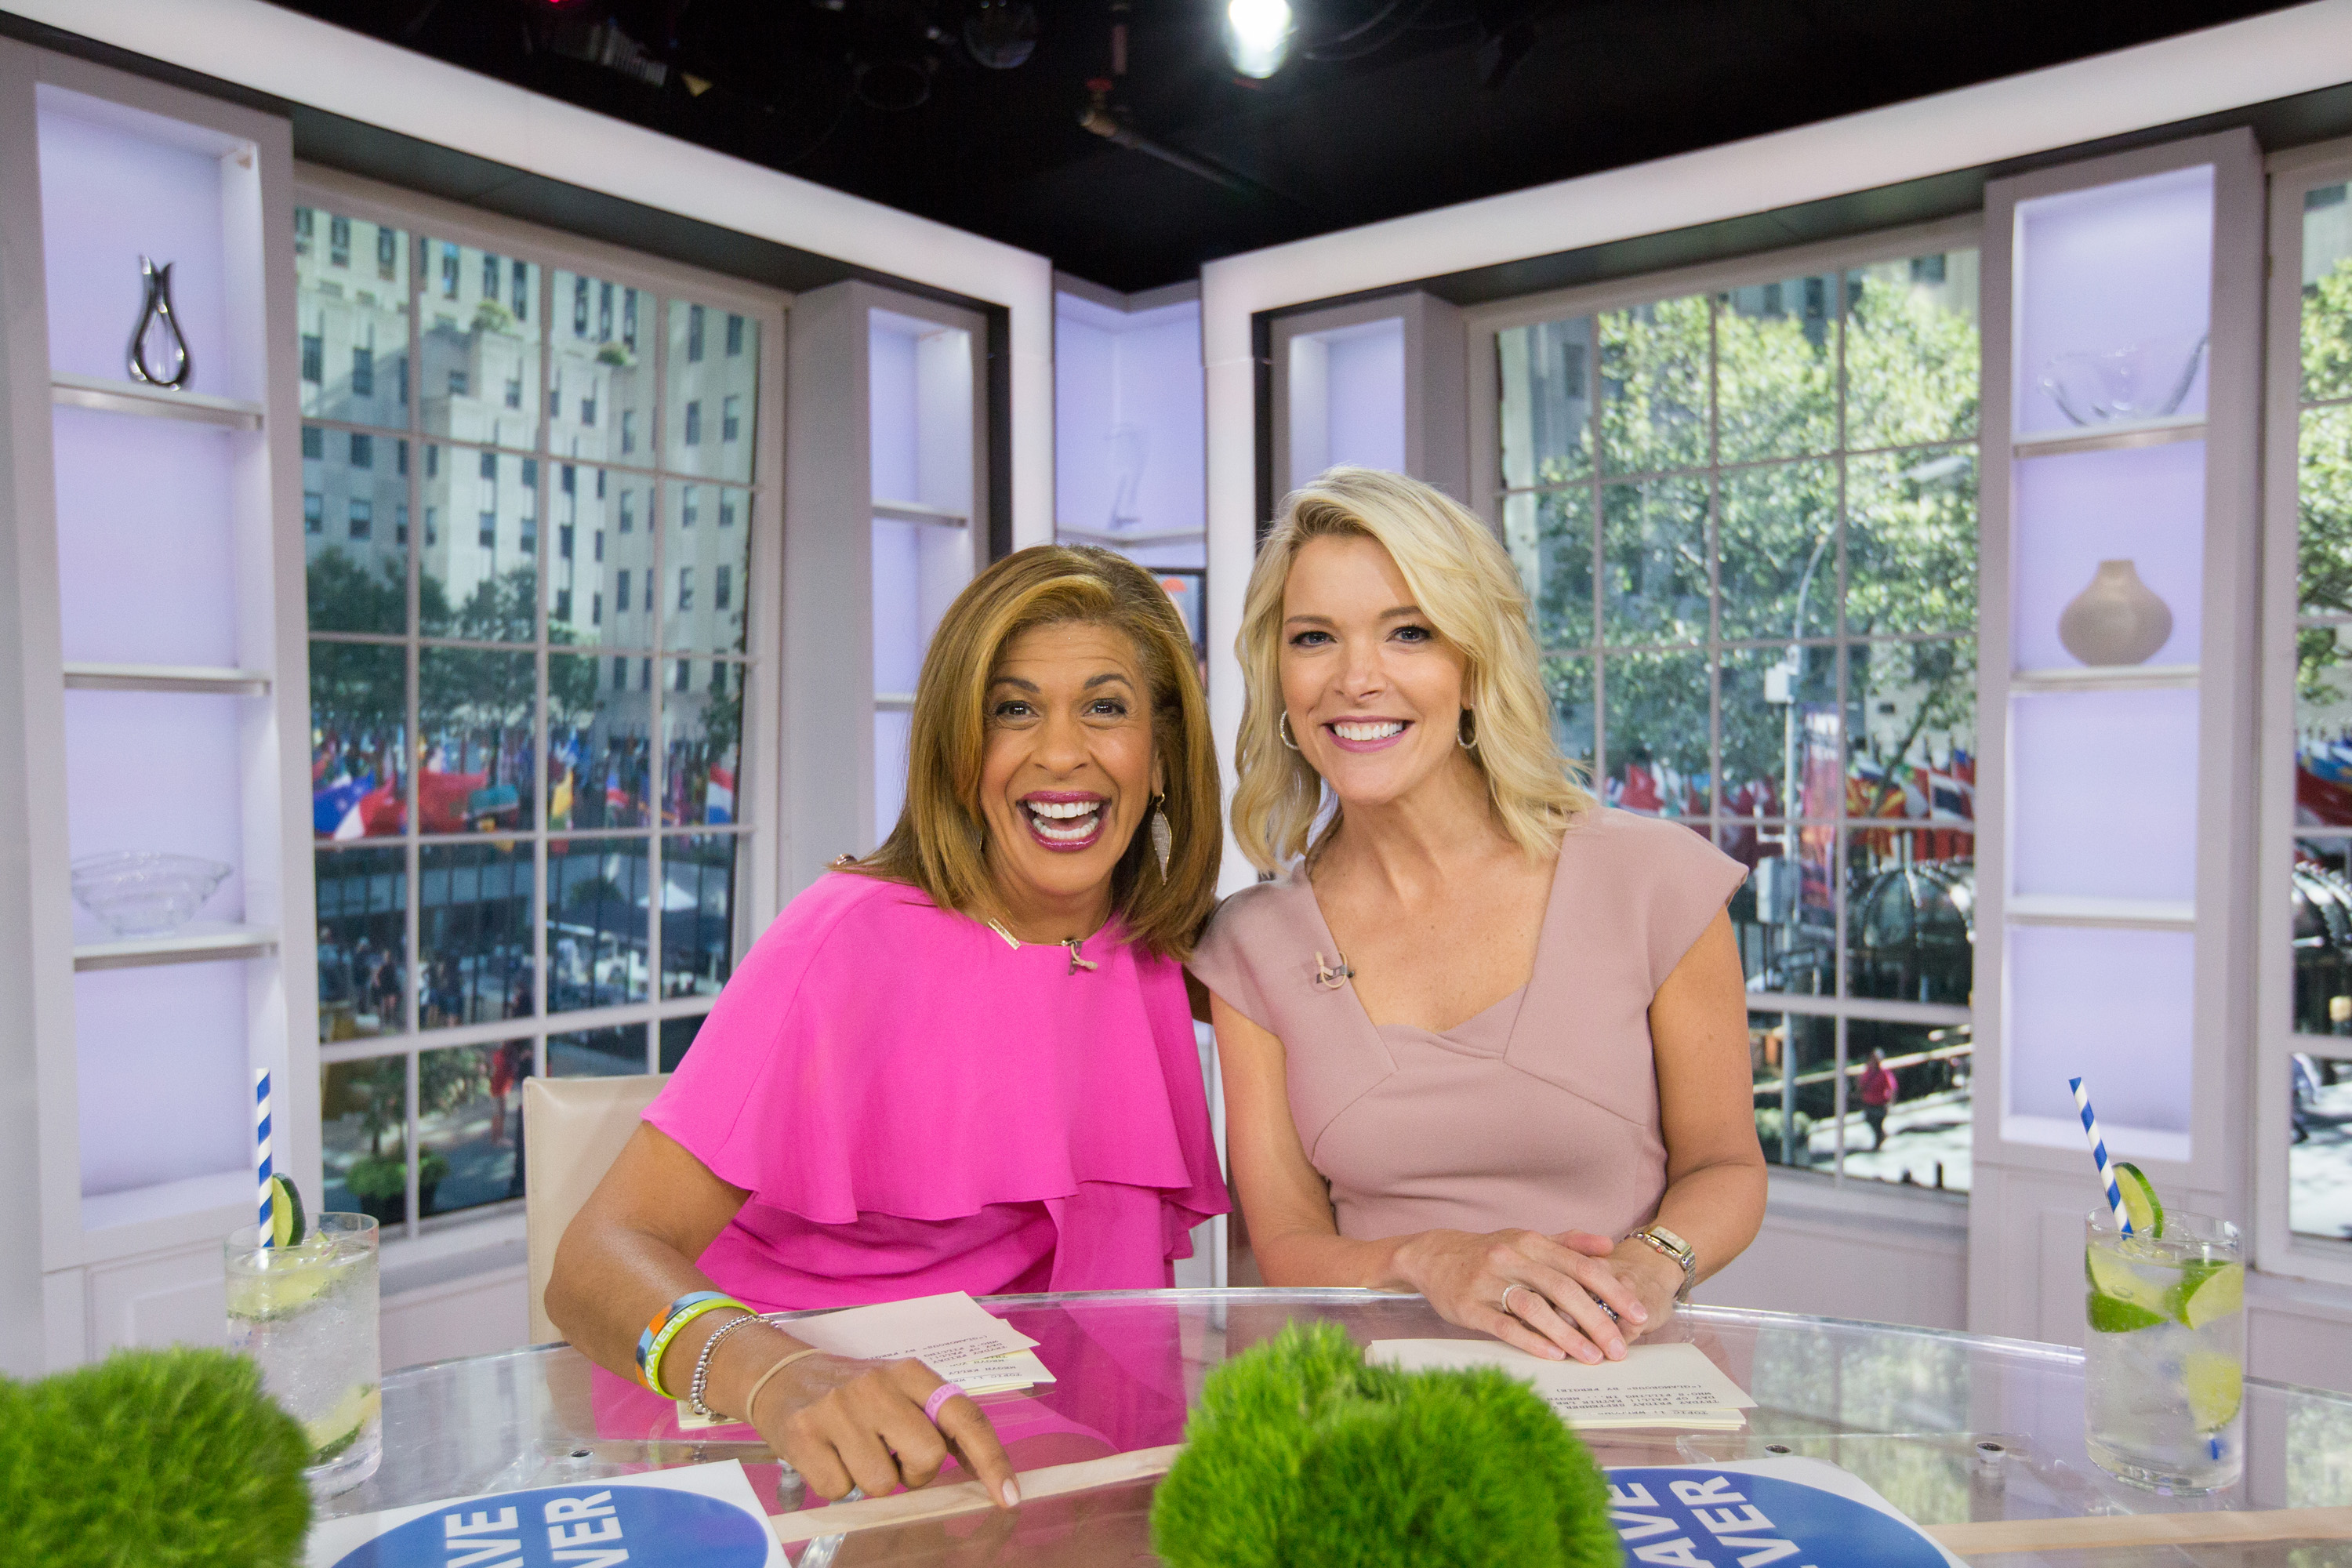 Hoda Kotb and Megyn Kelly on the Today Show on Sept. 22, 2017.